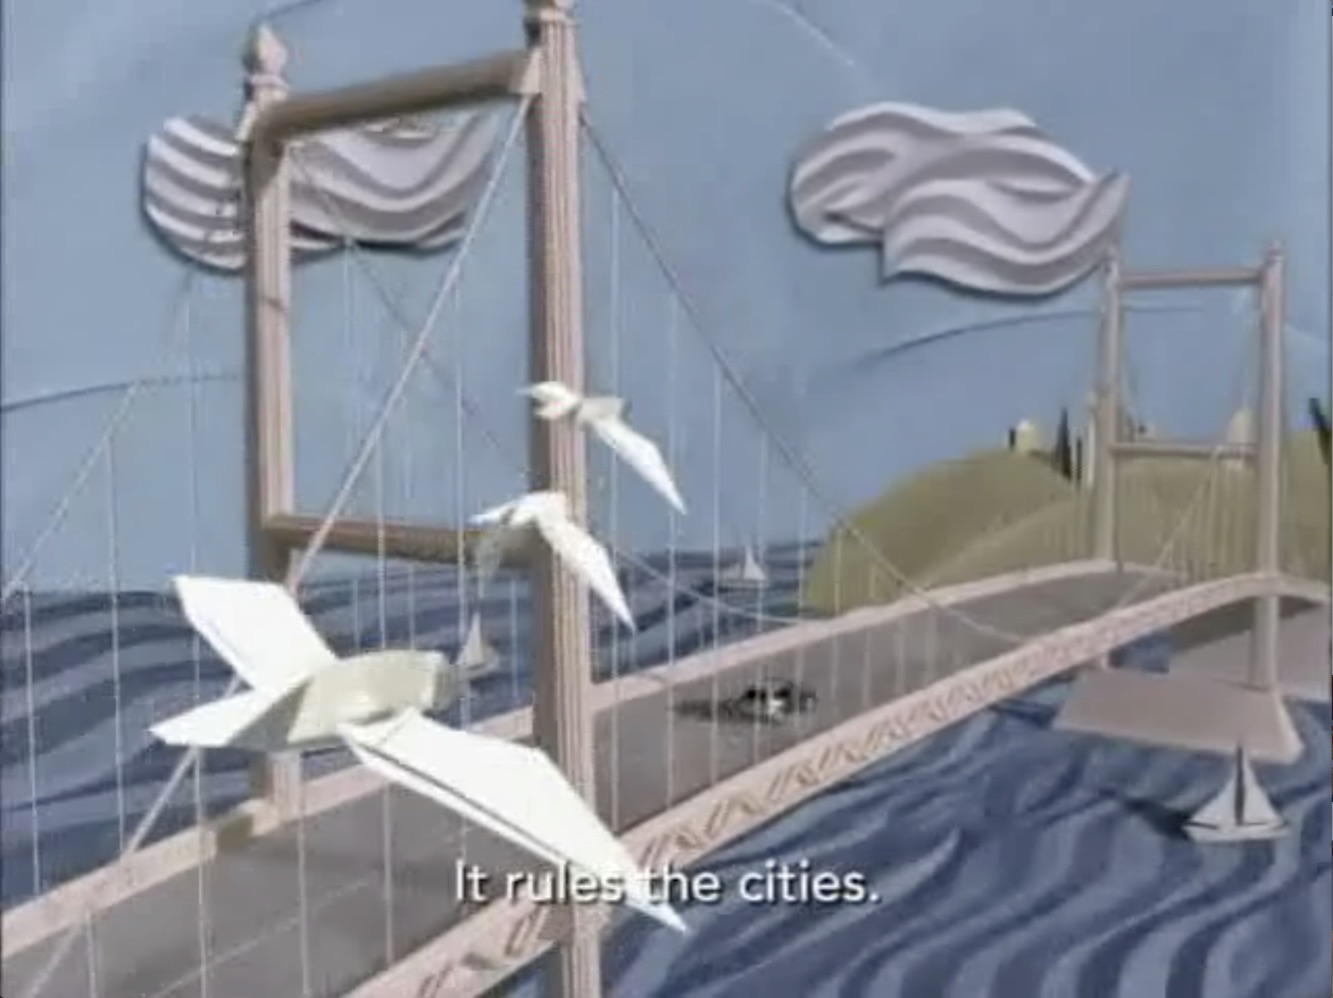 seagulls over bridge